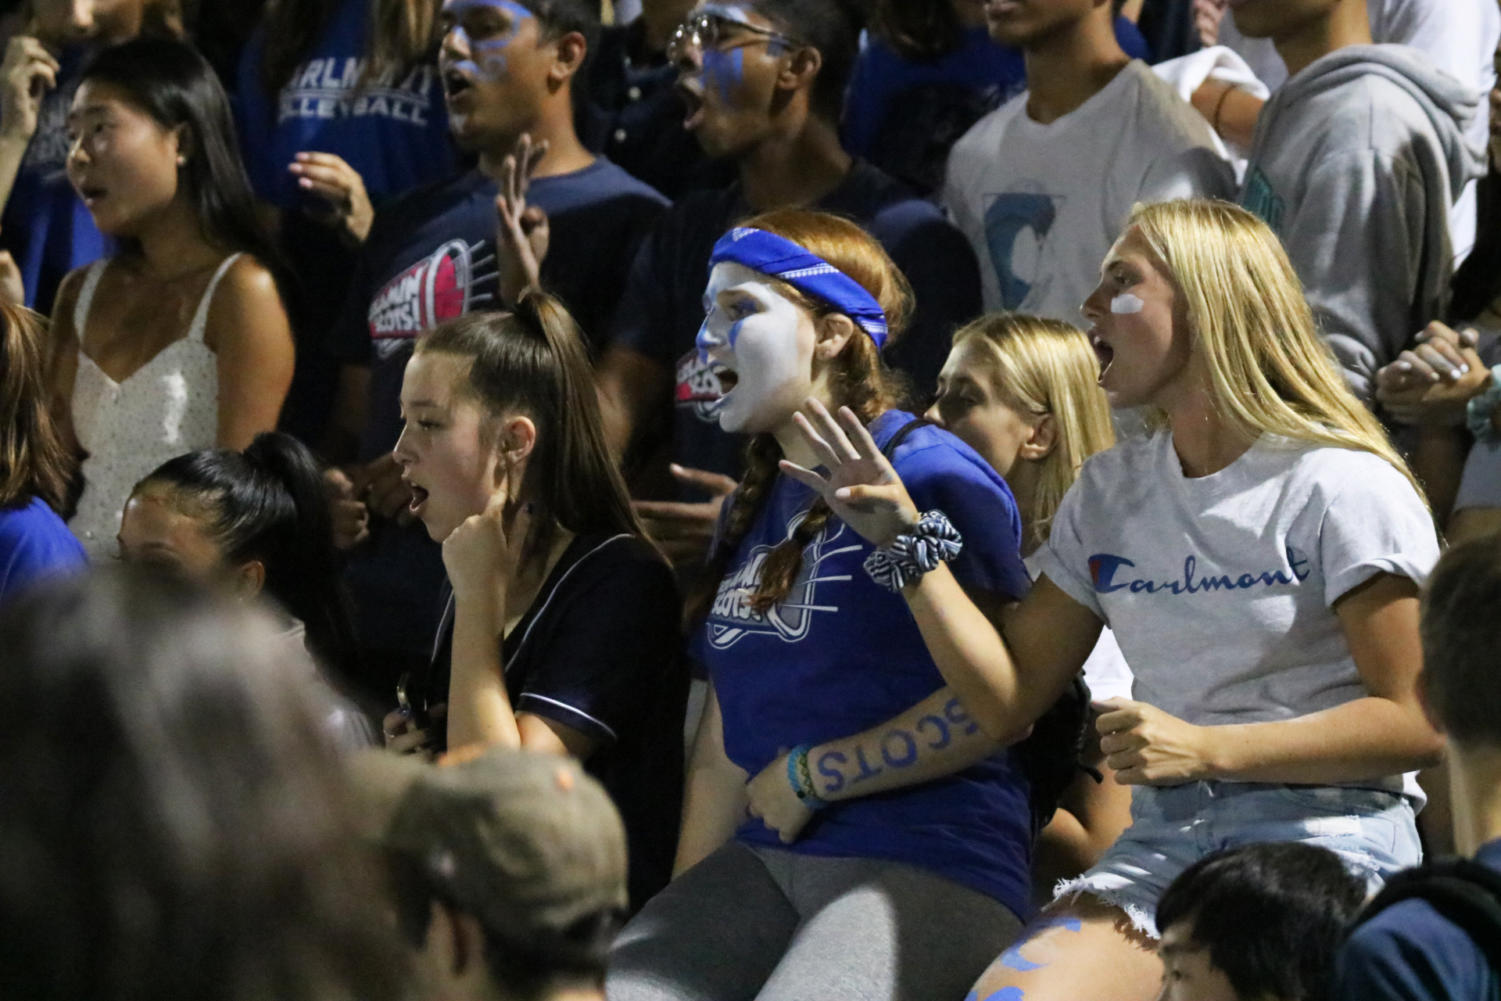 Hundreds of students lined up along the bleachers, cheering for the Scots in blue and white face paint and glitter. Friday was Carlmont's first home game of the season and with a final score of 69-19. The win also marked the second consecutive victory for the Scots.